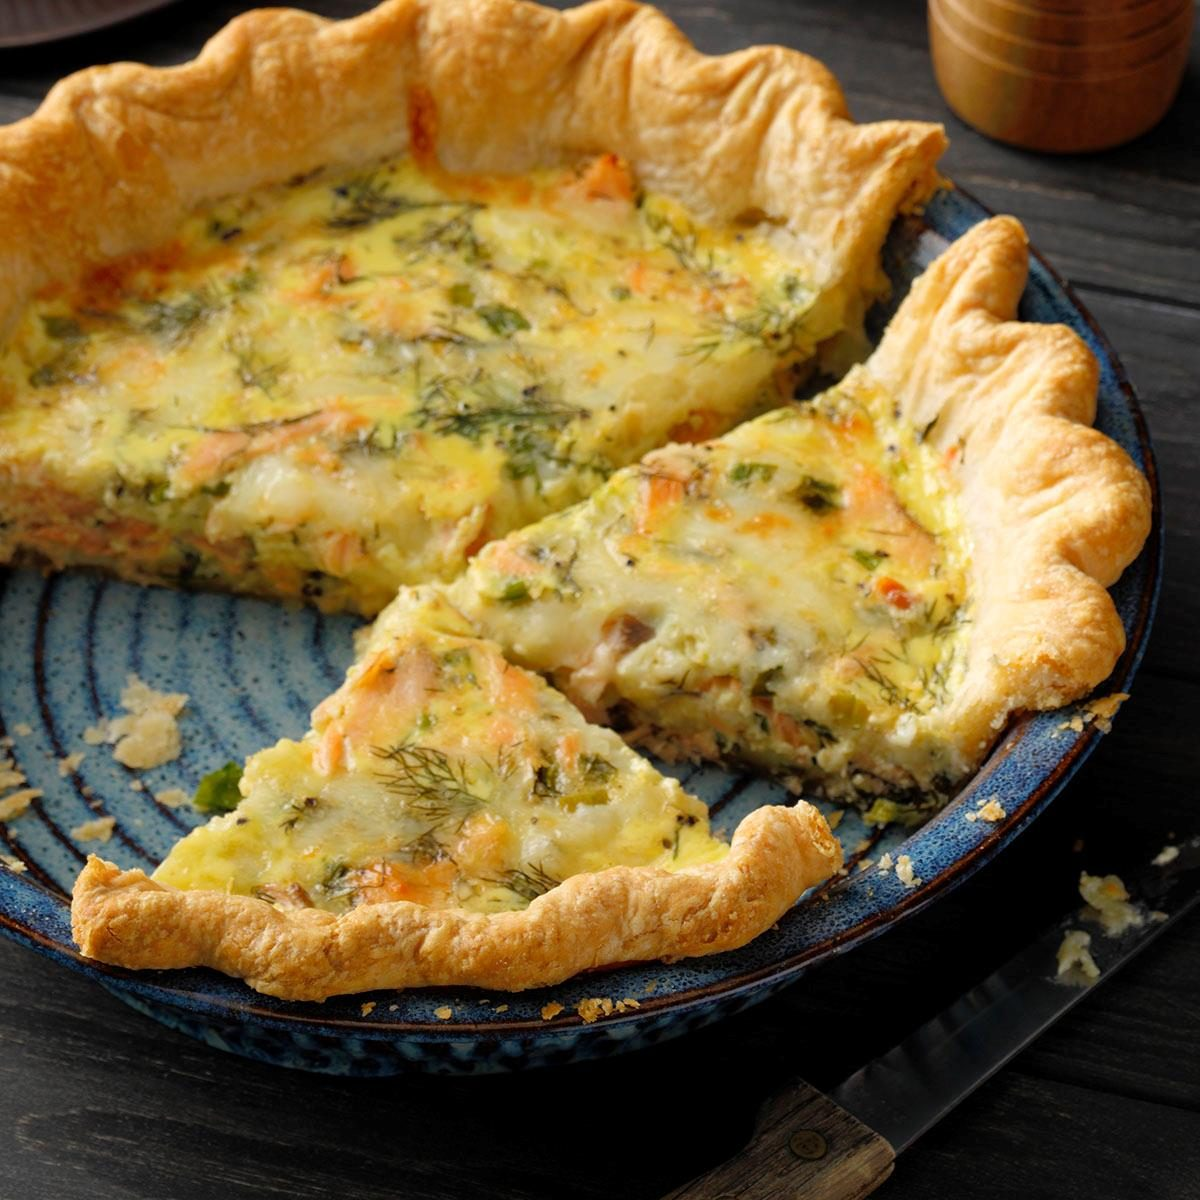 2nd Place: Finnish Salmon and Dill Pie